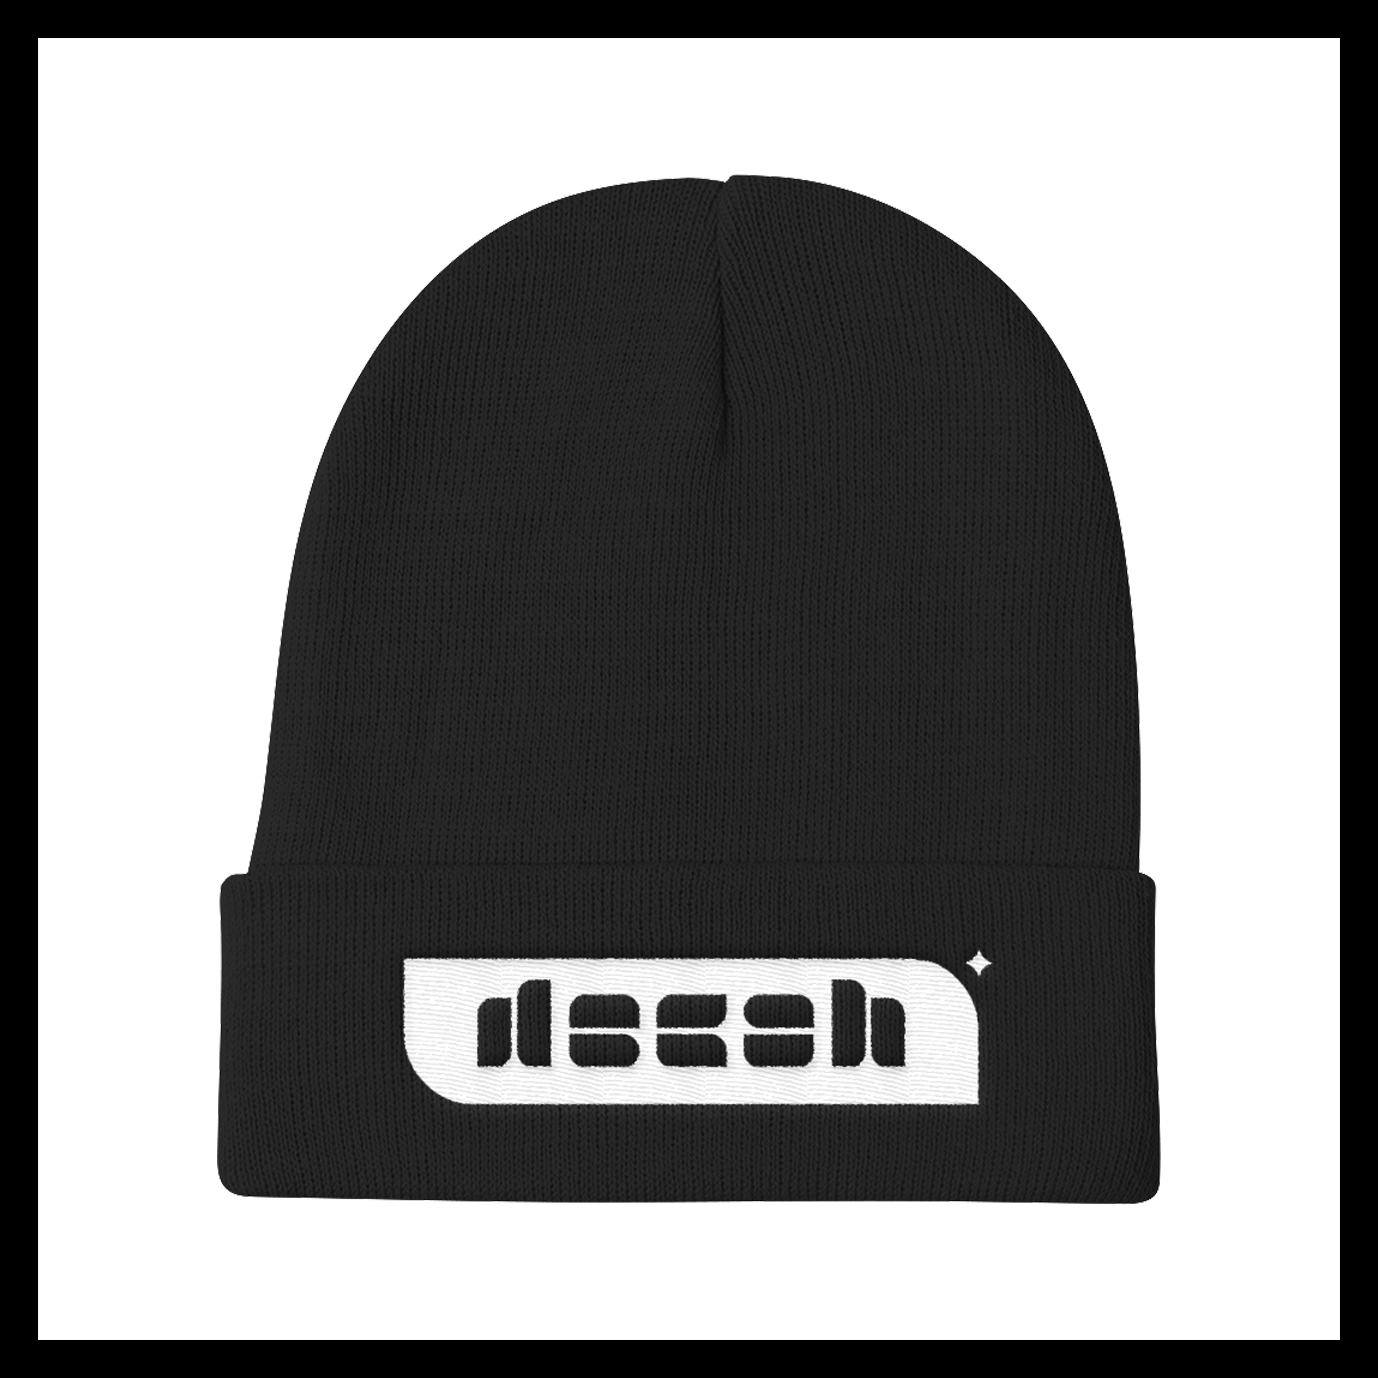 Image of decah Embroidered Beanie I